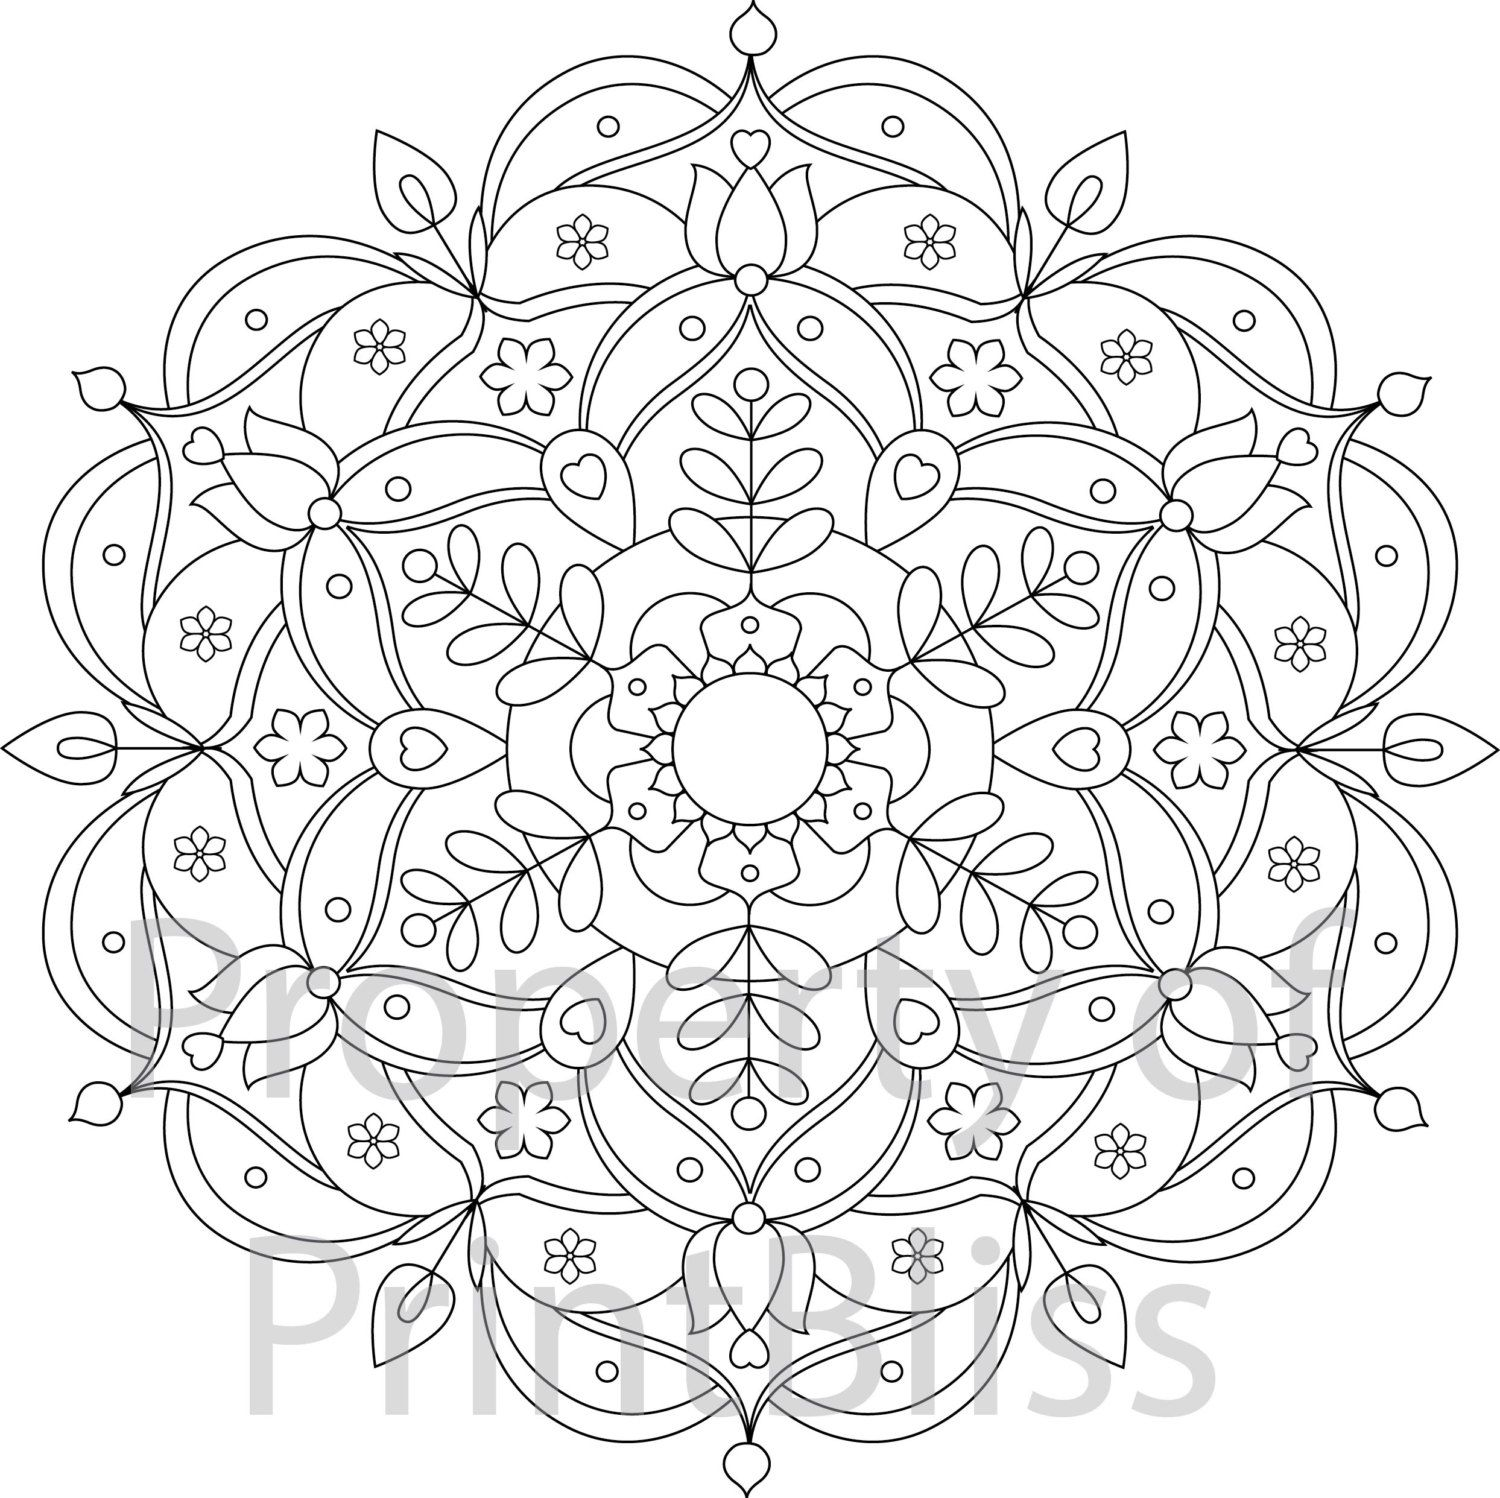 Free coloring pages kaleidoscope designs - Flower Mandala Printable Coloring Page By Printbliss On Etsy